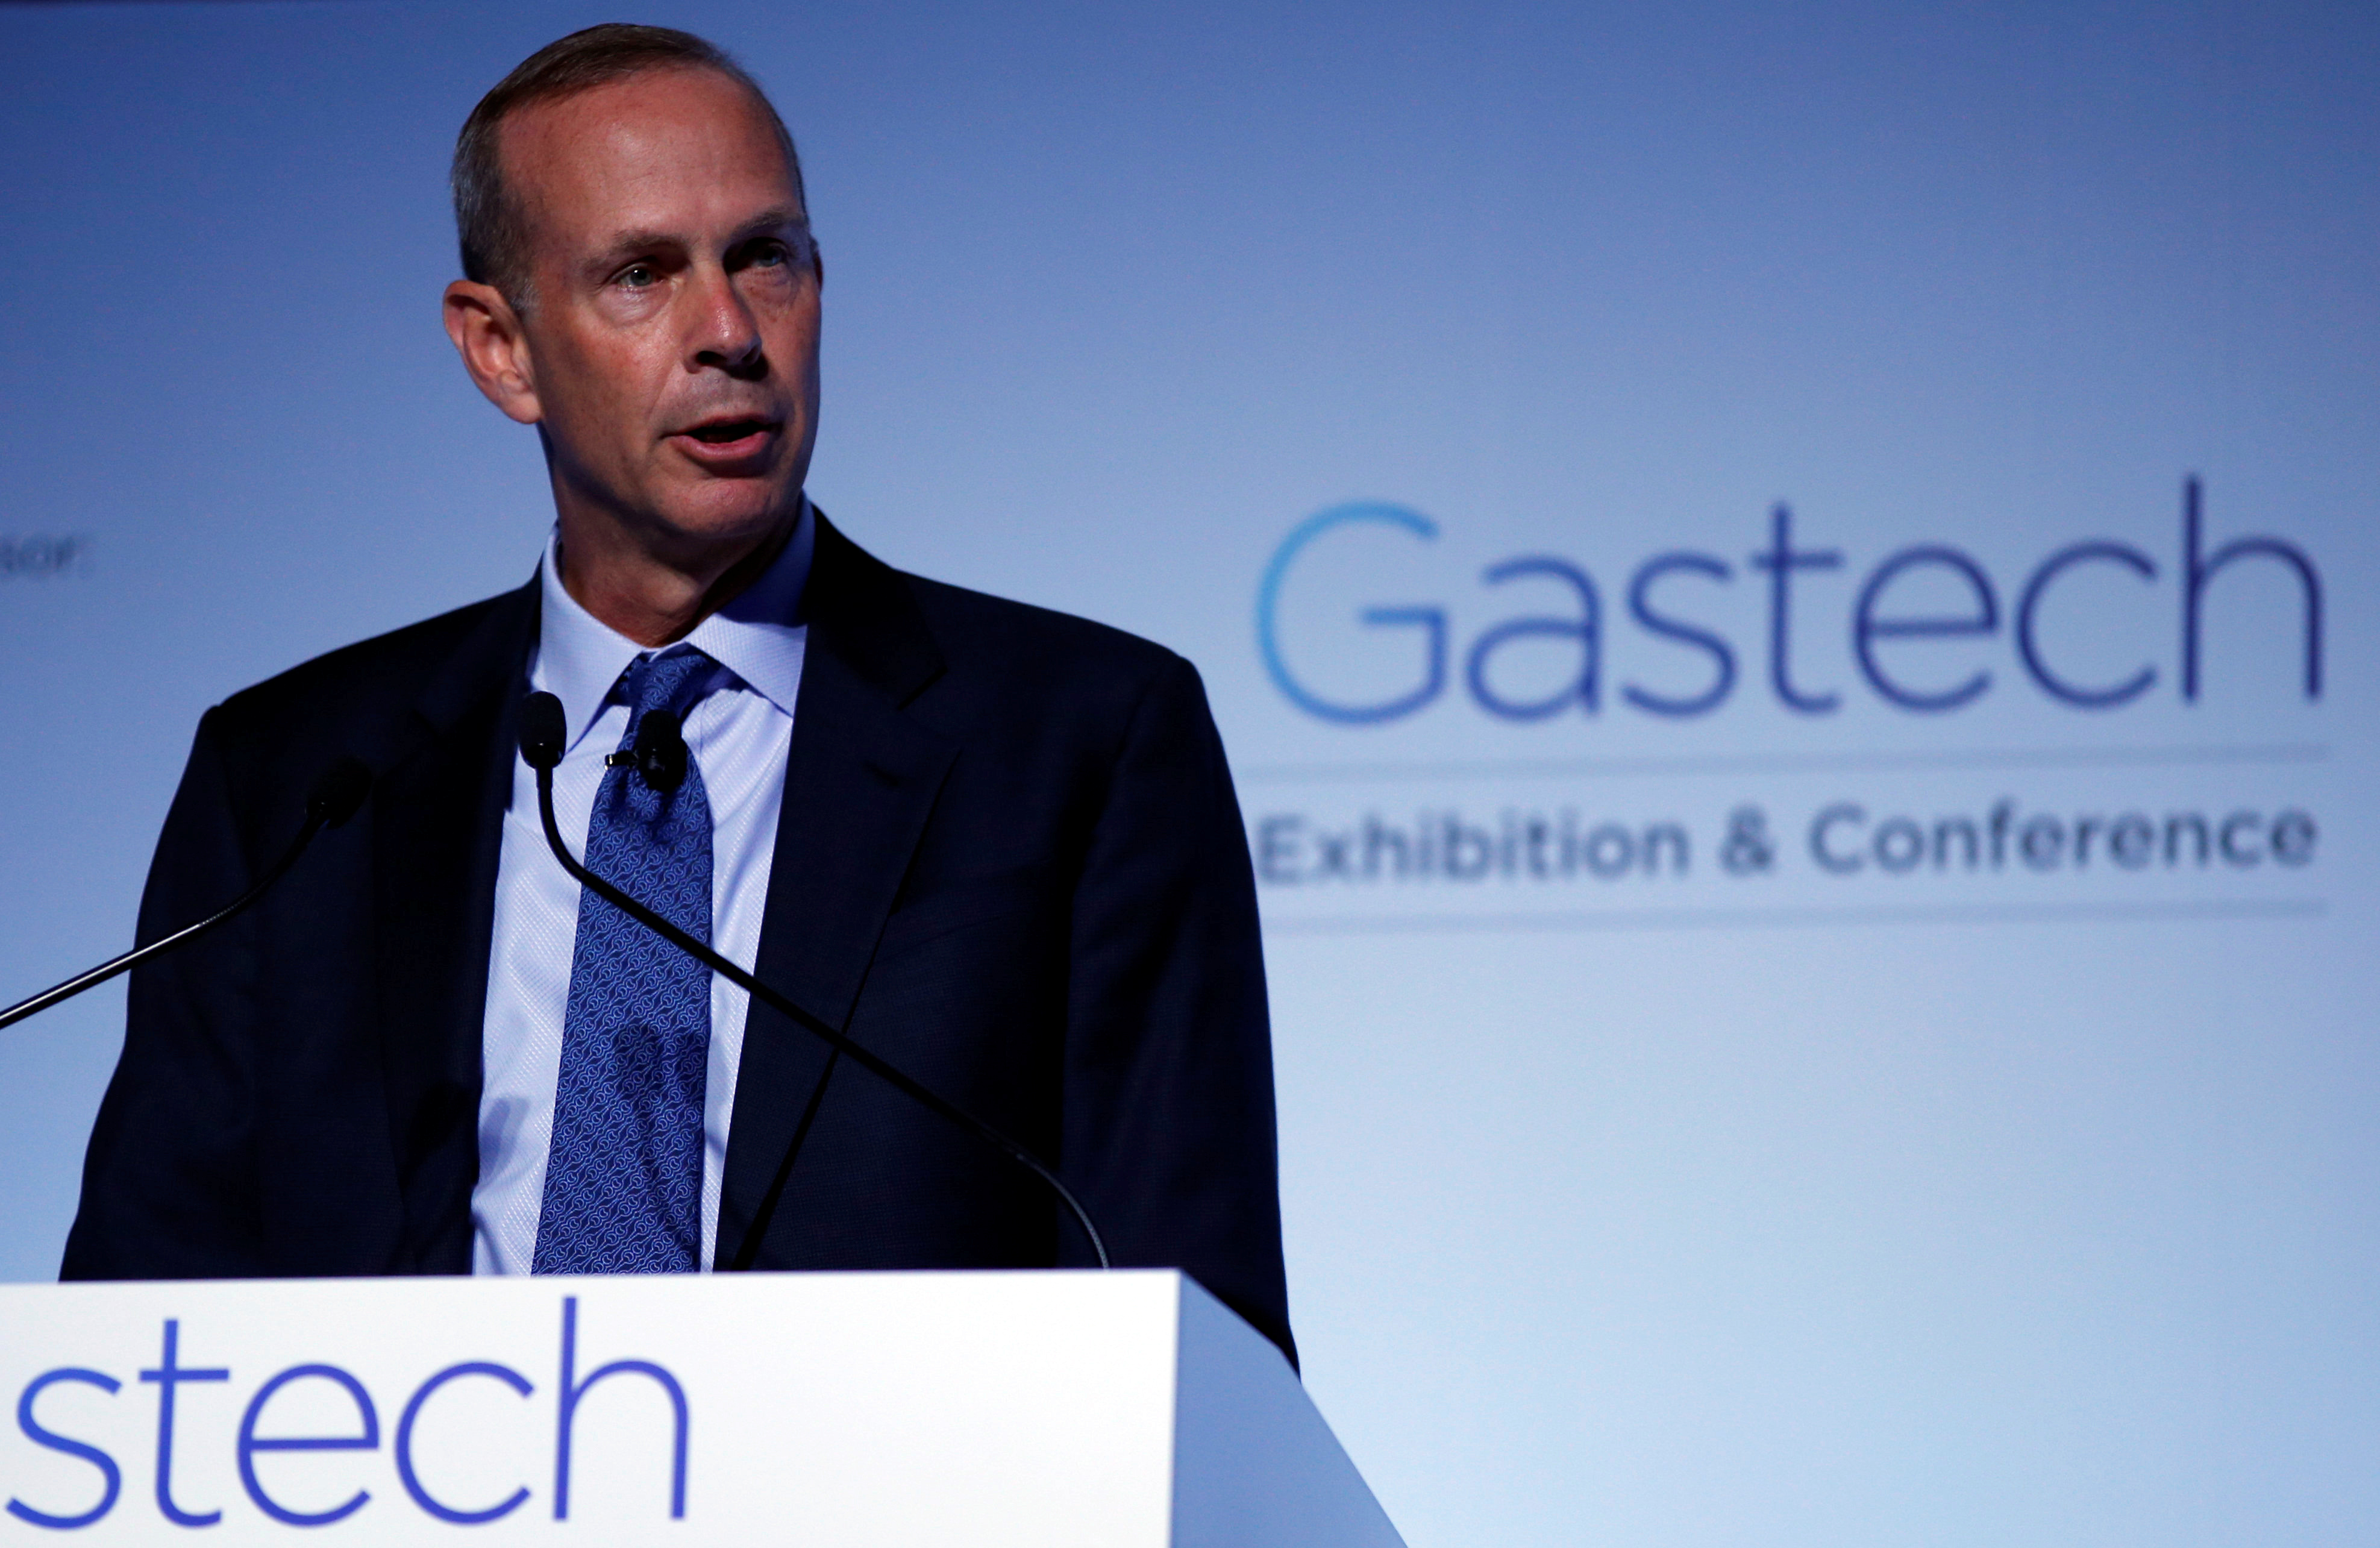 Chevron Corp Vice Chairman Michael Wirth speaks at Gastech, the world's biggest expo for the gas industry, in Chiba, Japan April 4, 2017. REUTERS/Toru Hanai